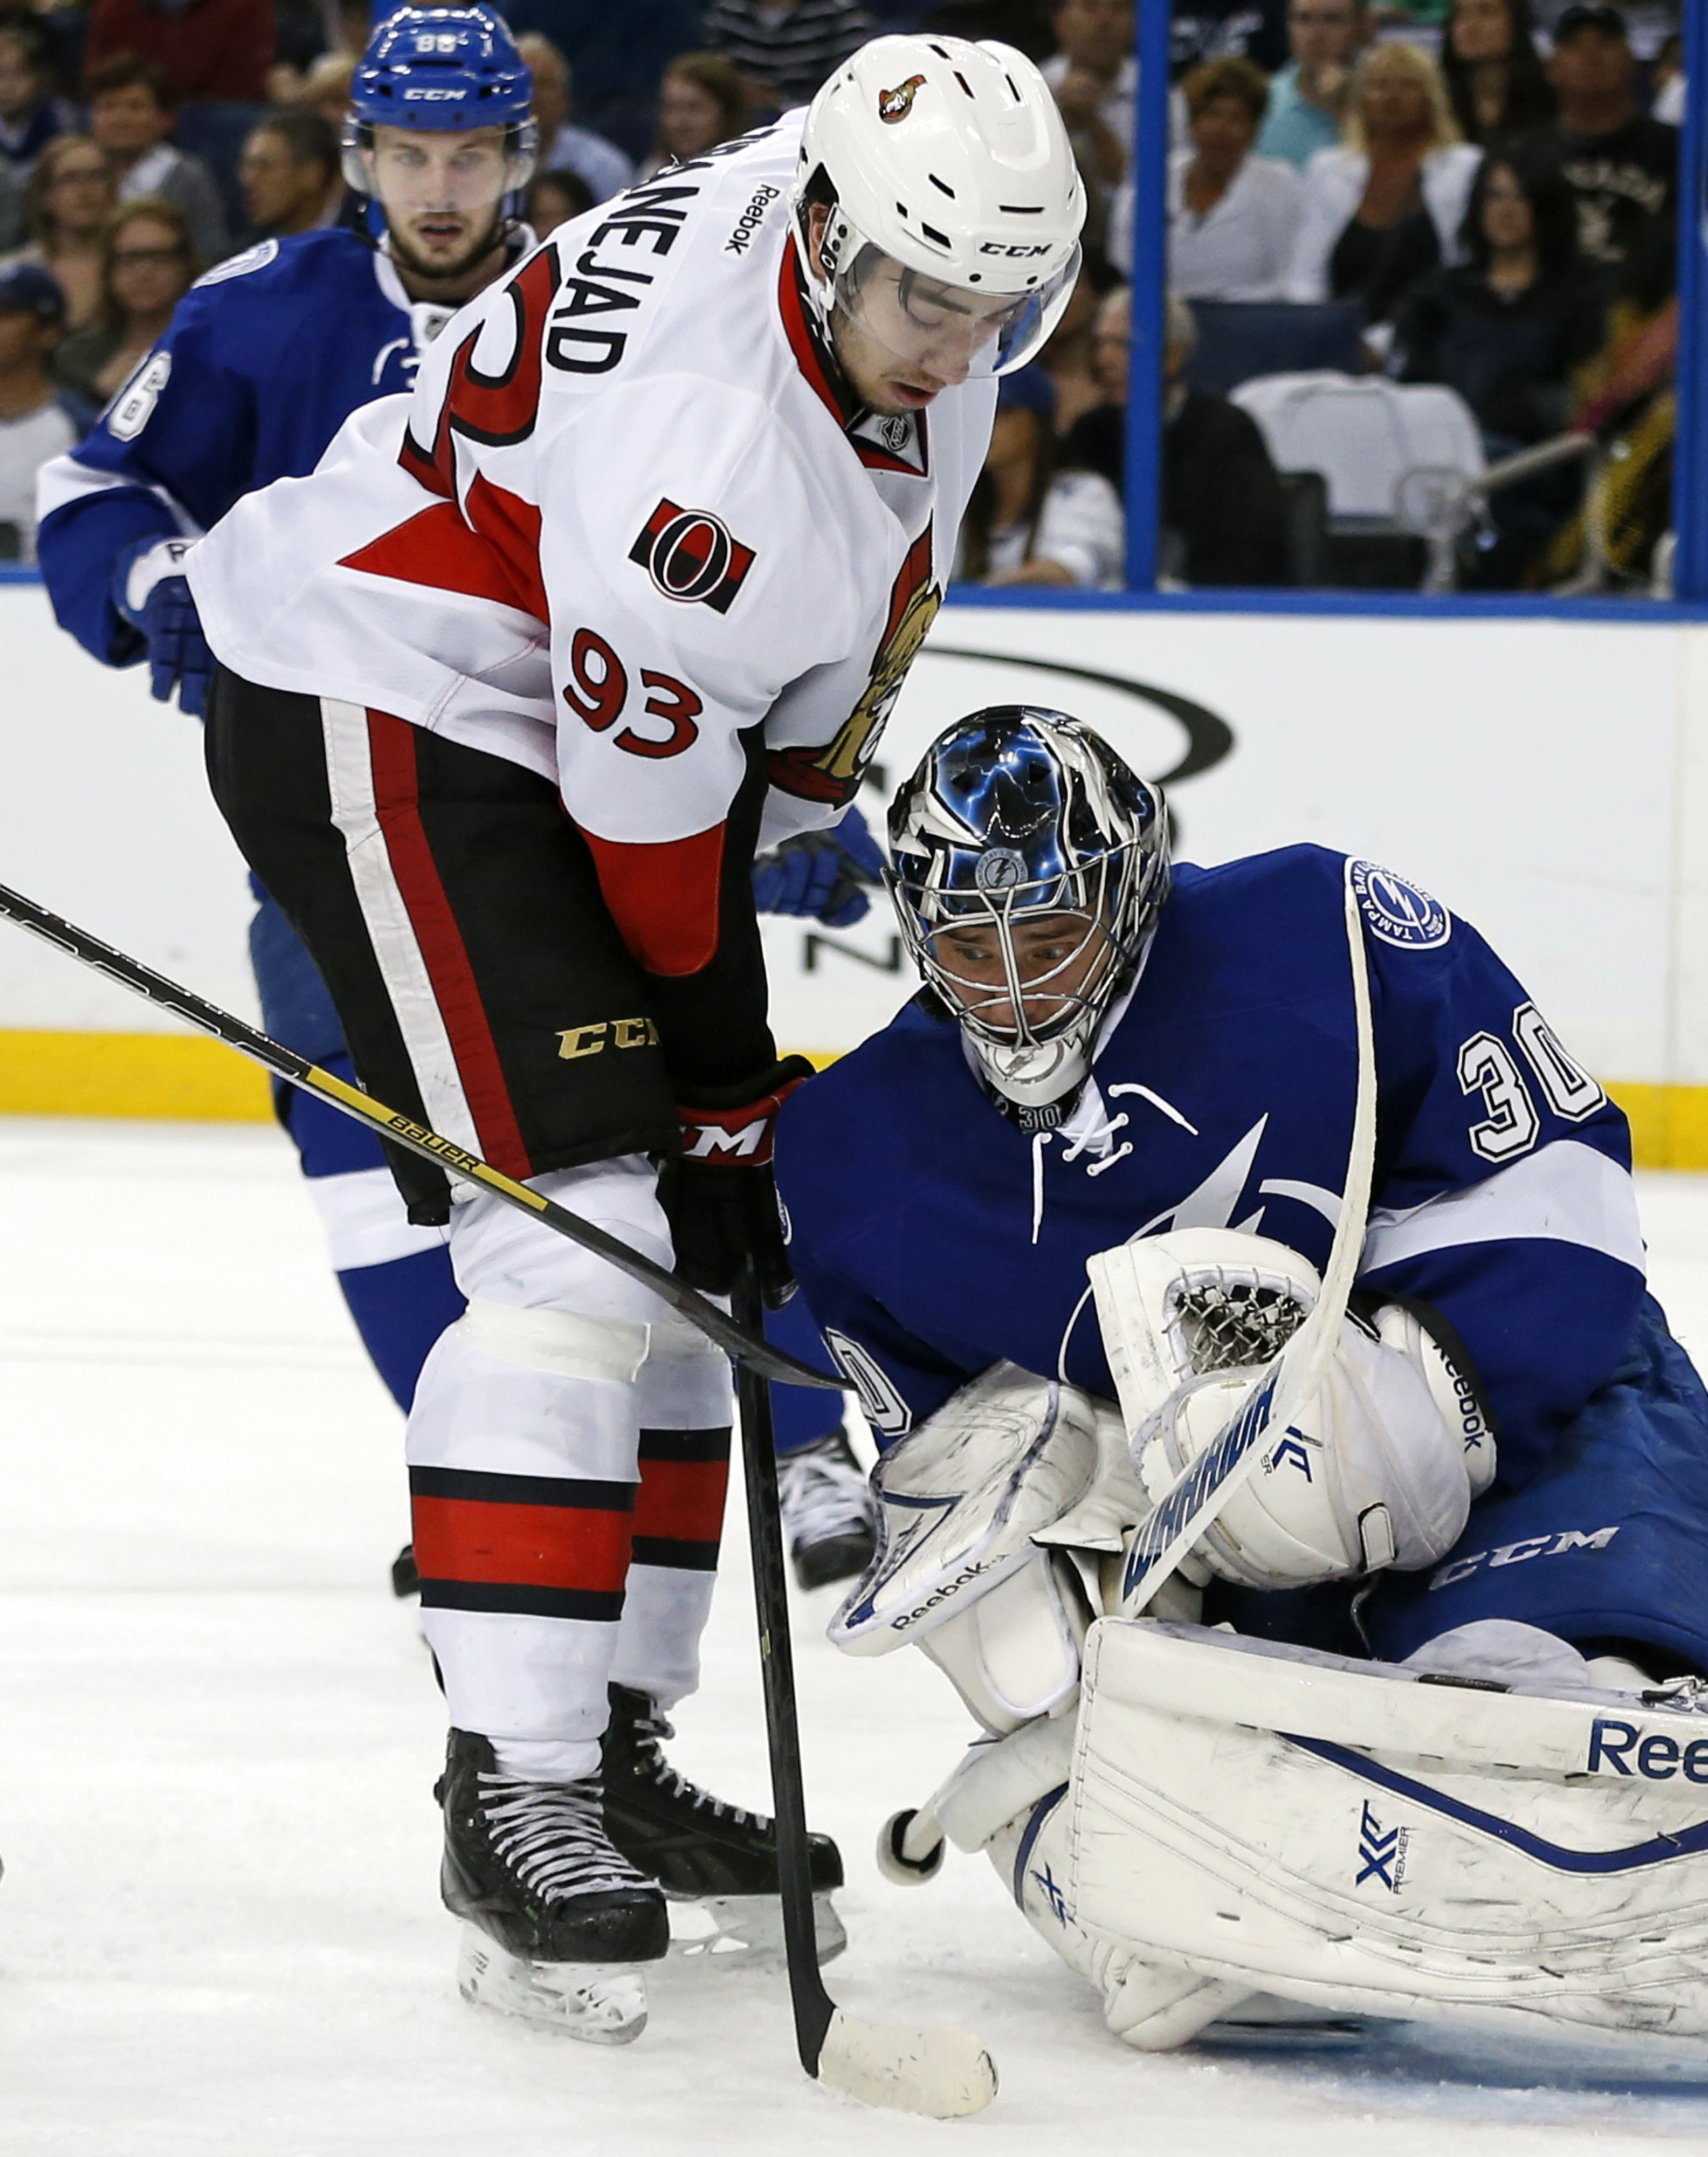 The one and only time Zibanejad felt tall next to Ben Bishop